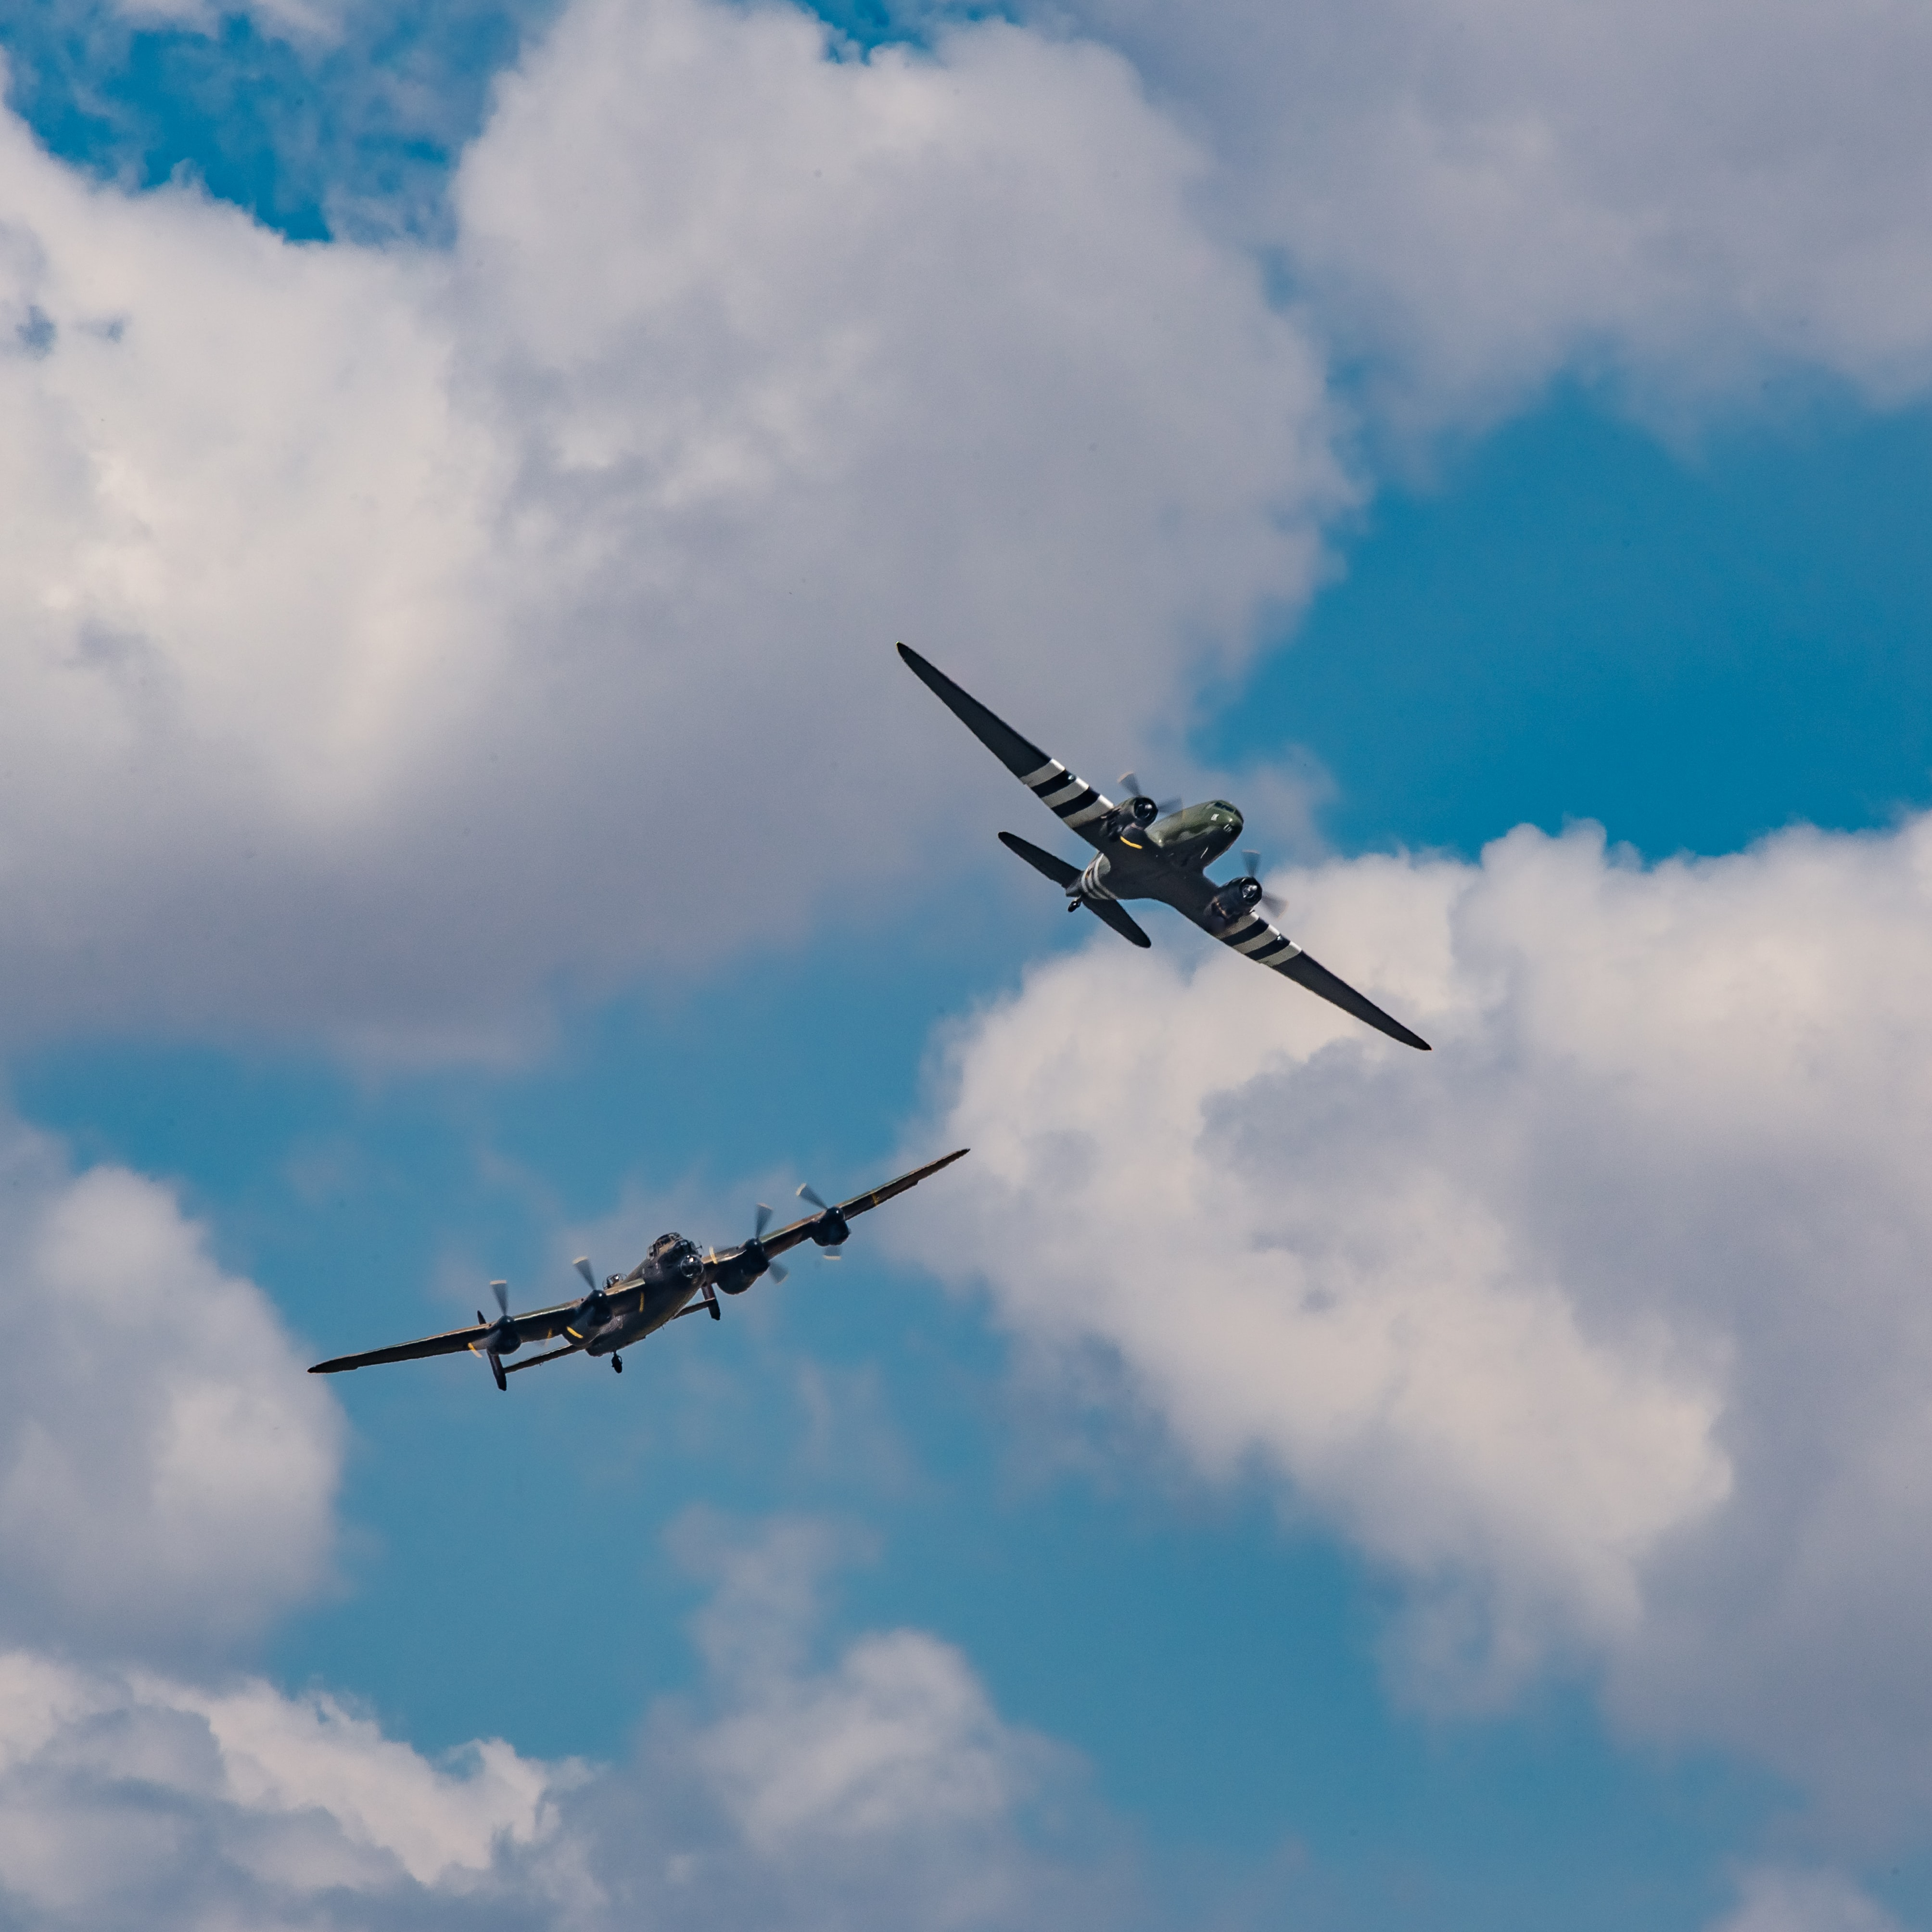 two planes under white clouds during daytime